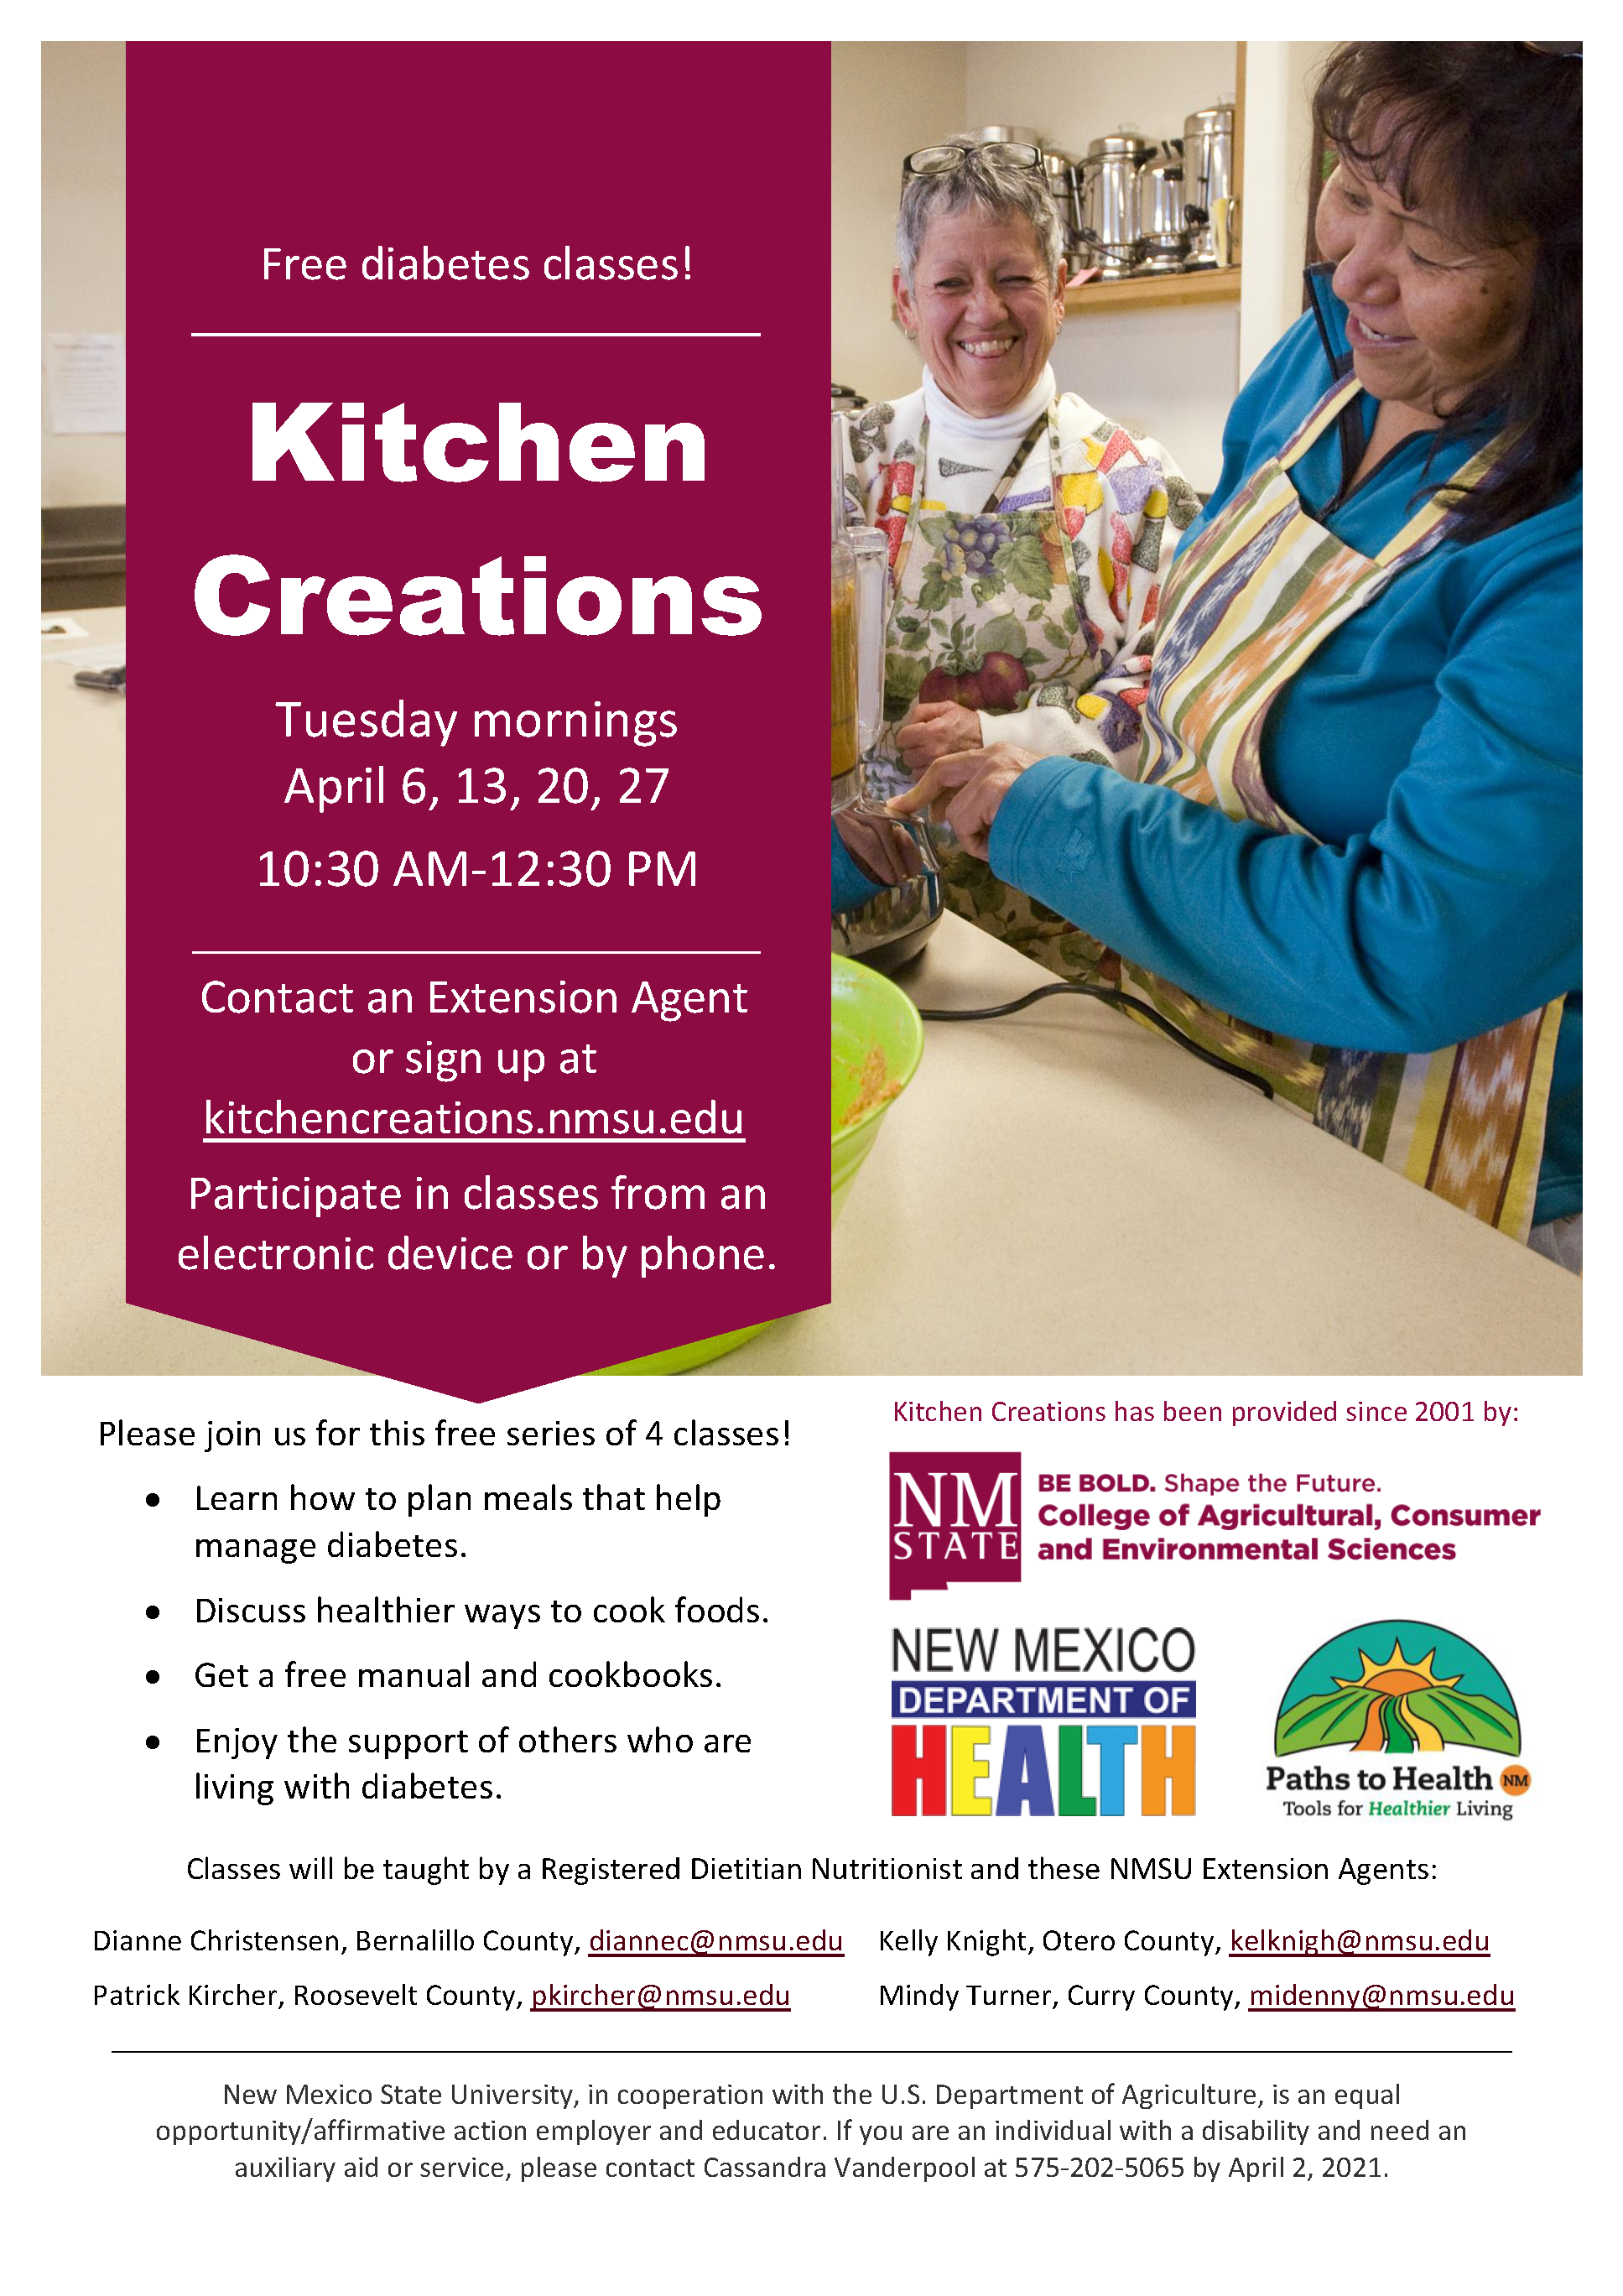 Kitchen Creations Class Flyer